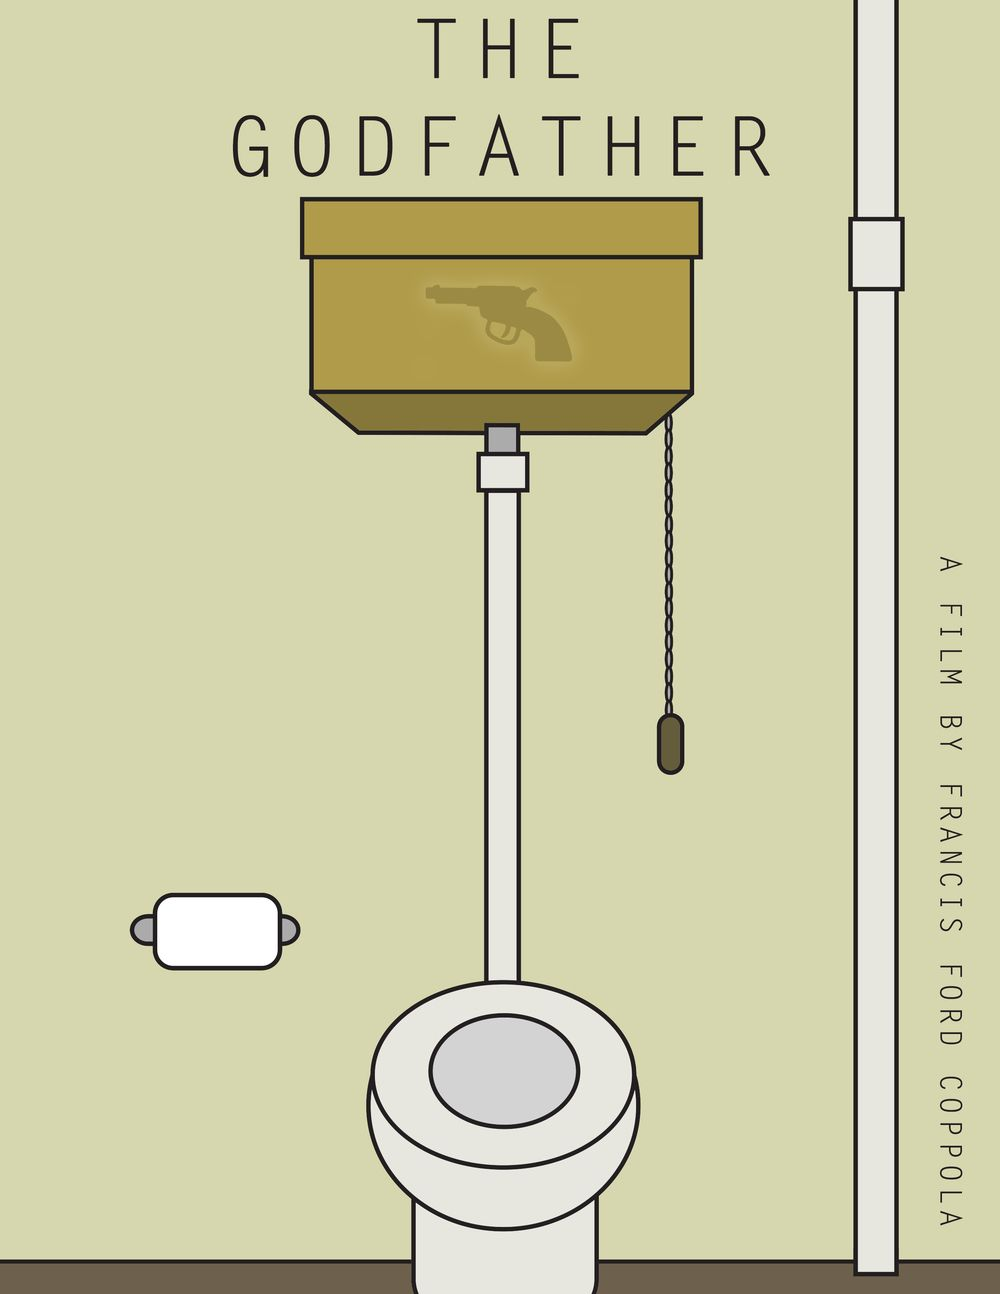 The Godfather - minimalist movie poster featuring the gun for Michael Corleone stashed behind the toilet #GangsterMovie #GangsterFlick